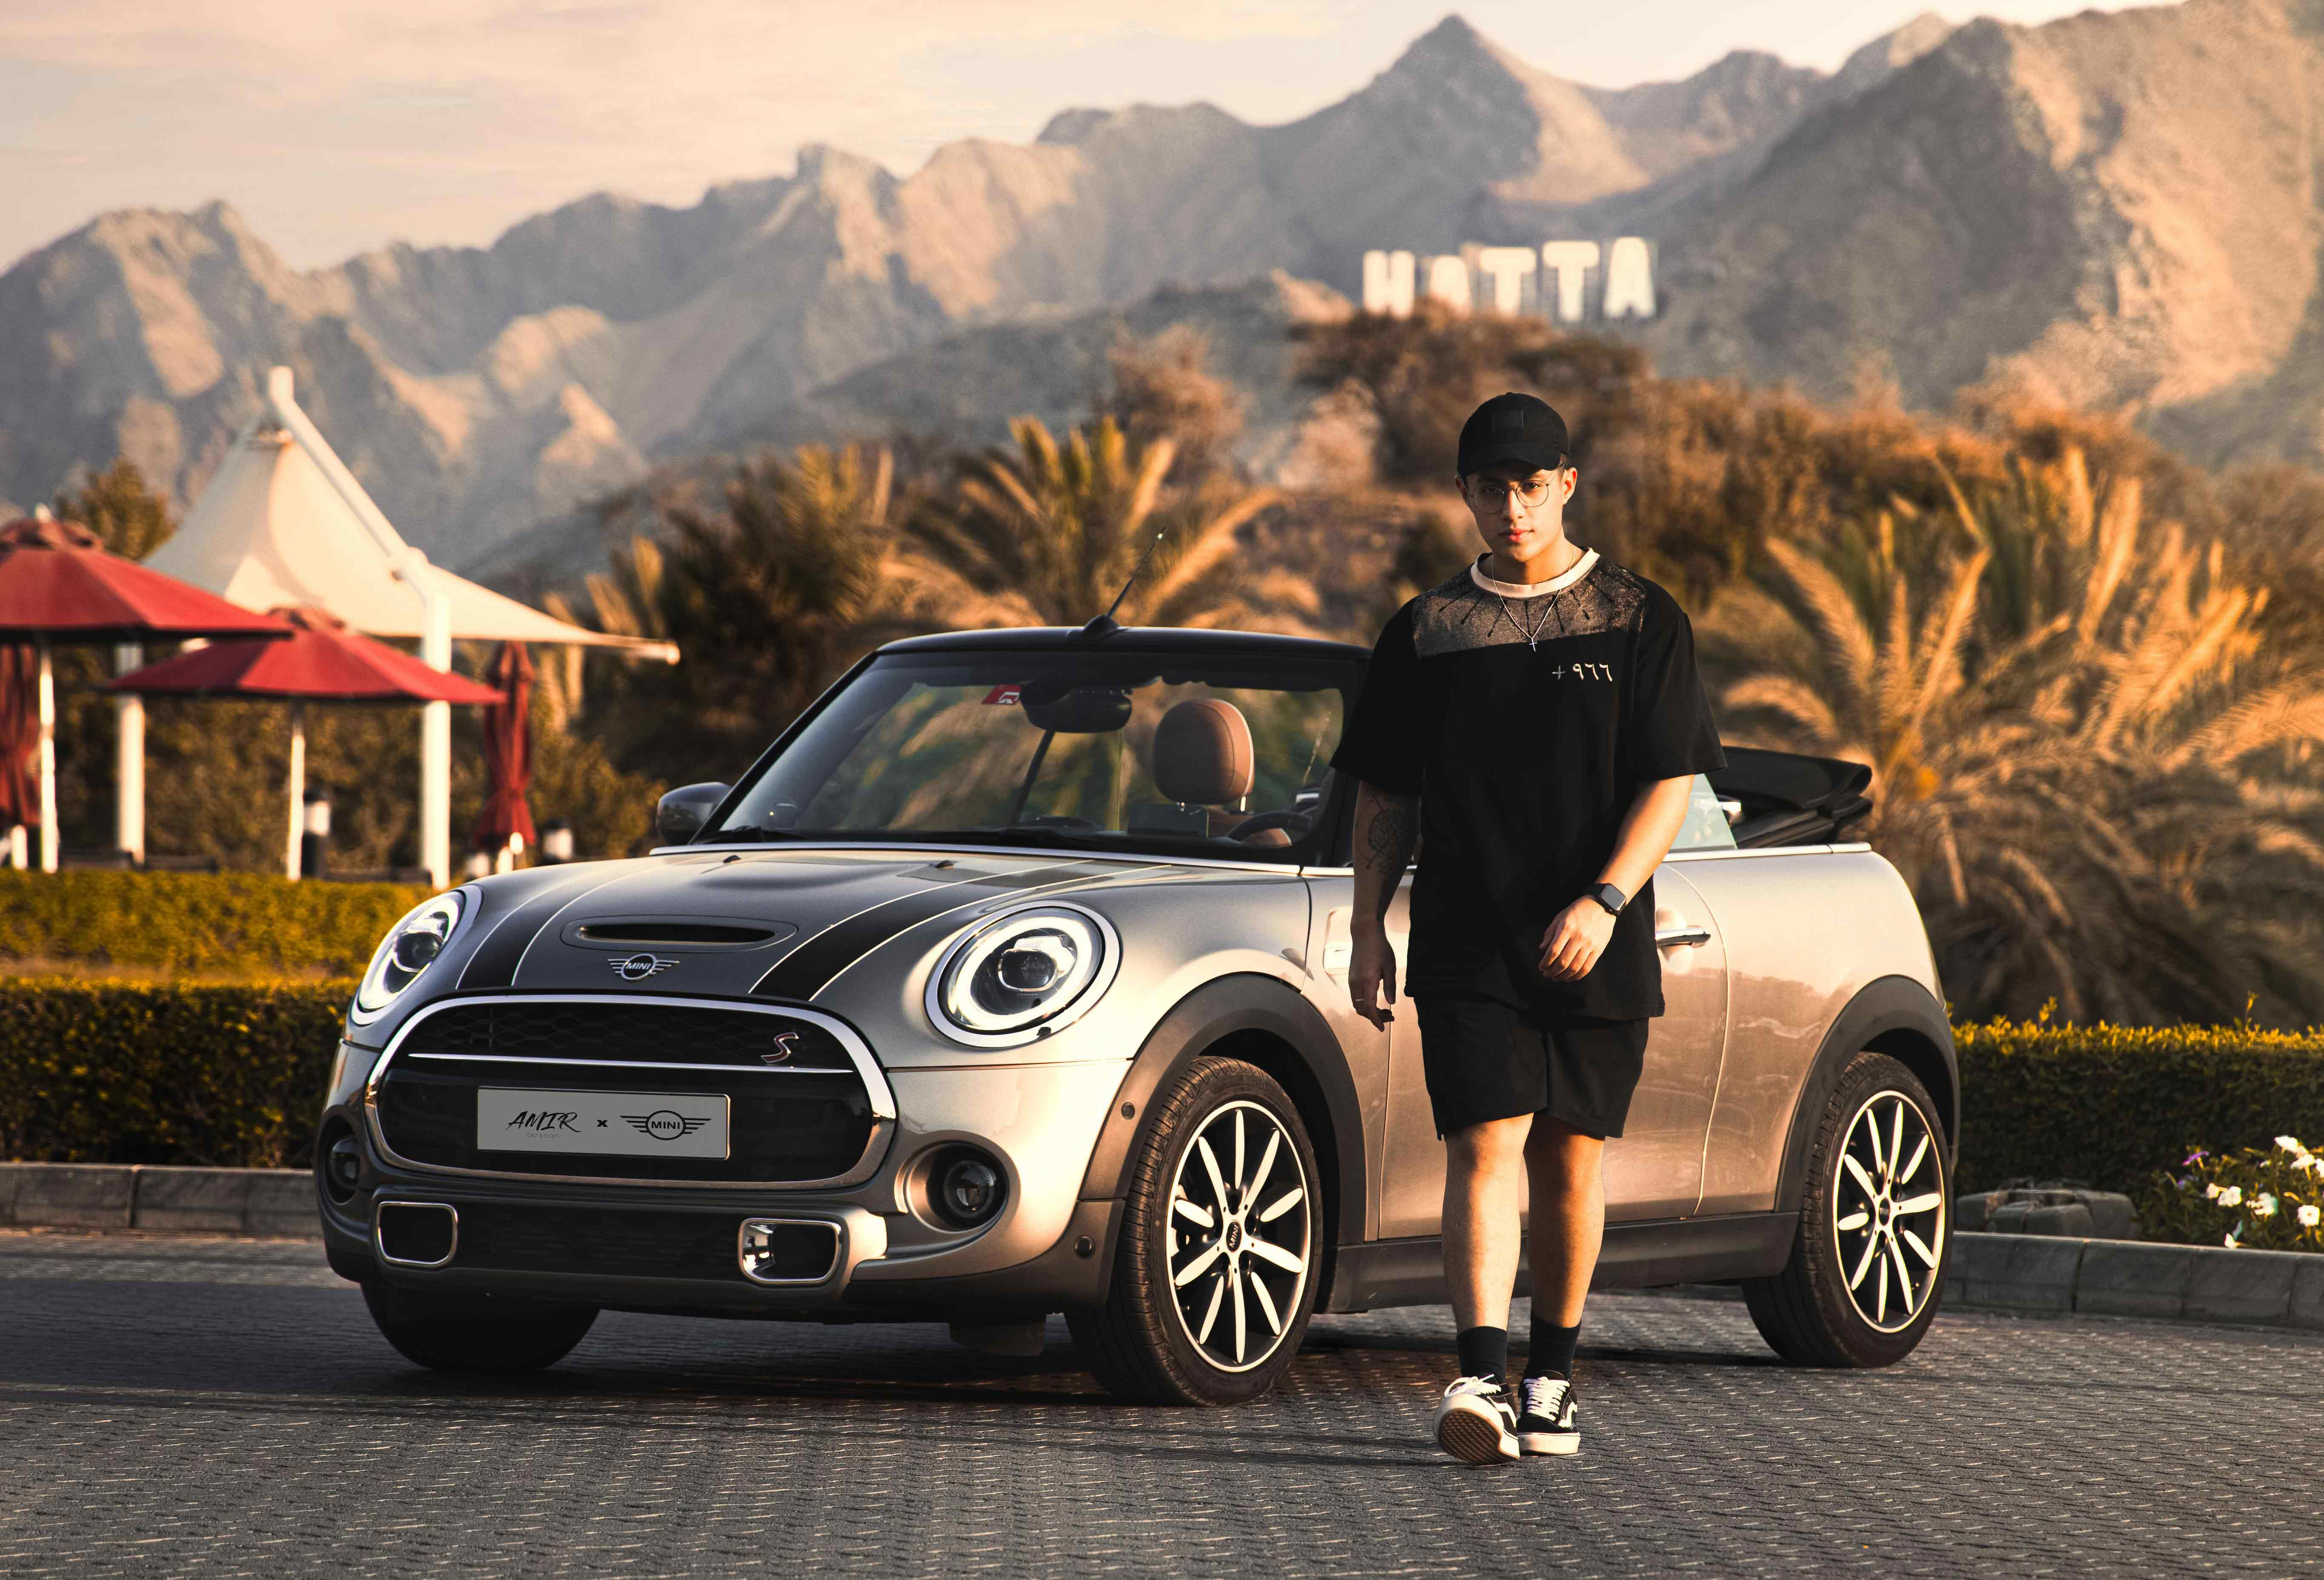 AGMC challenges MINI lovers to share their hidden gems with the launch of #TheMINIThingsDXB